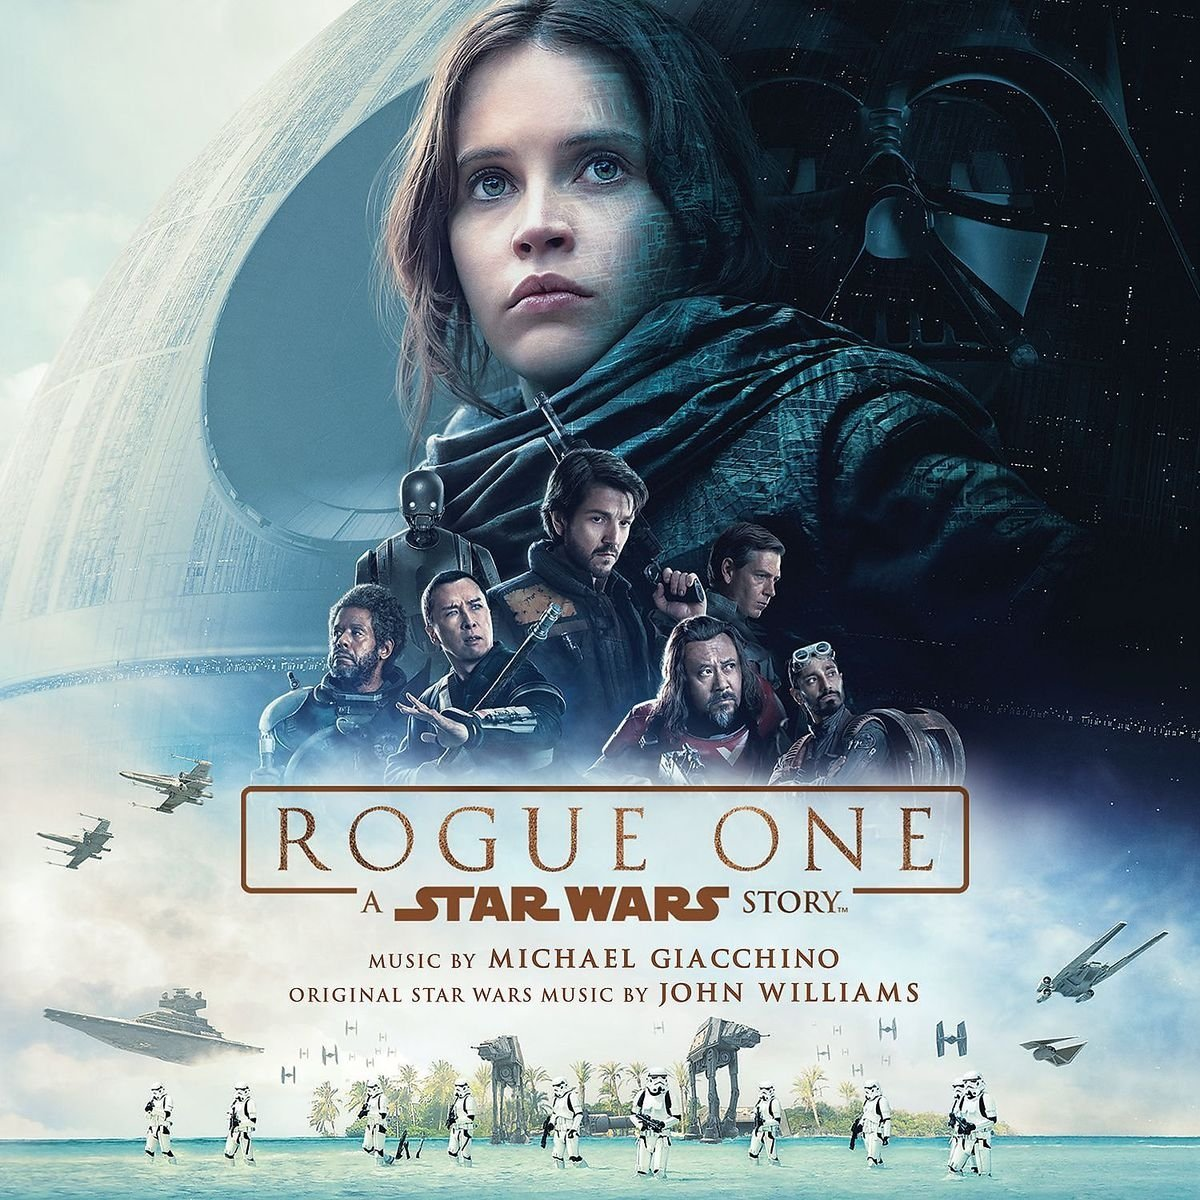 Un vinyle pour Rogue One: a Star Wars Story  Sortie prévu le 21 Avril #starwars #RogueOne #vinyle #bluray #music   https://www. amazon.fr/gp/product/B01 MZ2TRD4?ie=UTF8&amp;camp=1642&amp;creativeASIN=B01MZ2TRD4&amp;linkCode=xm2&amp;tag=leblogdeshack-21 &nbsp; … <br>http://pic.twitter.com/Ivsammmcq8